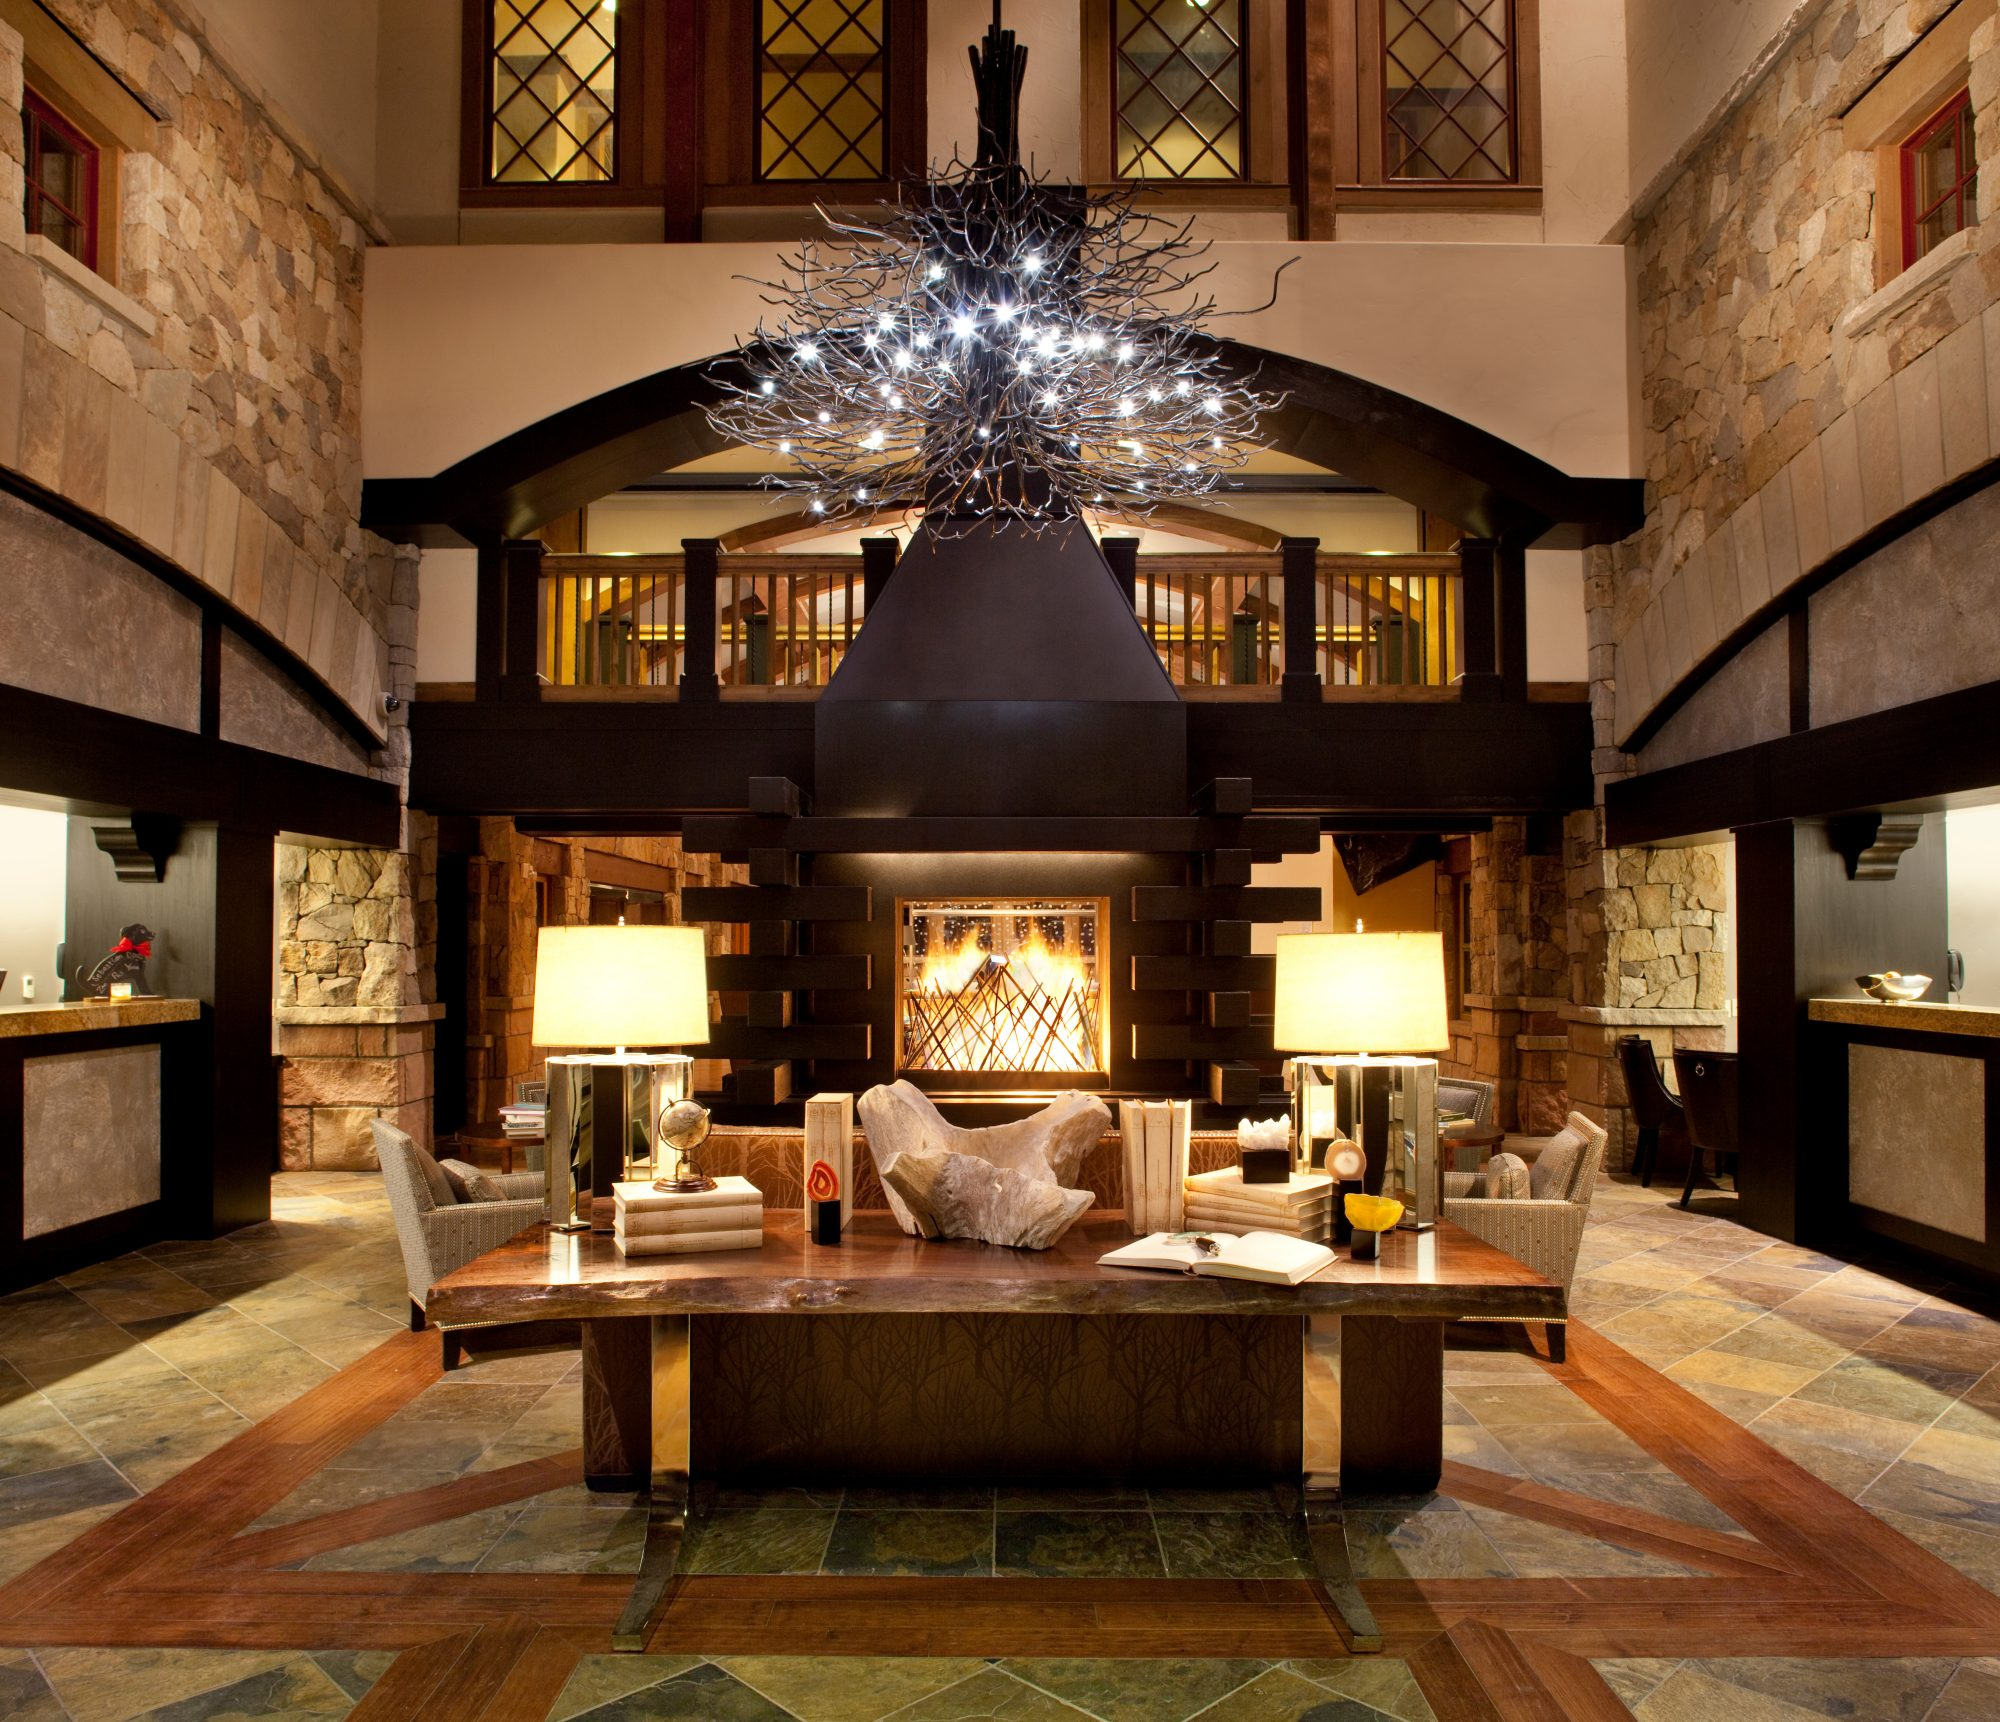 No. 12 Sebastian Vail—A Timbers Resort in Vail, Colorado